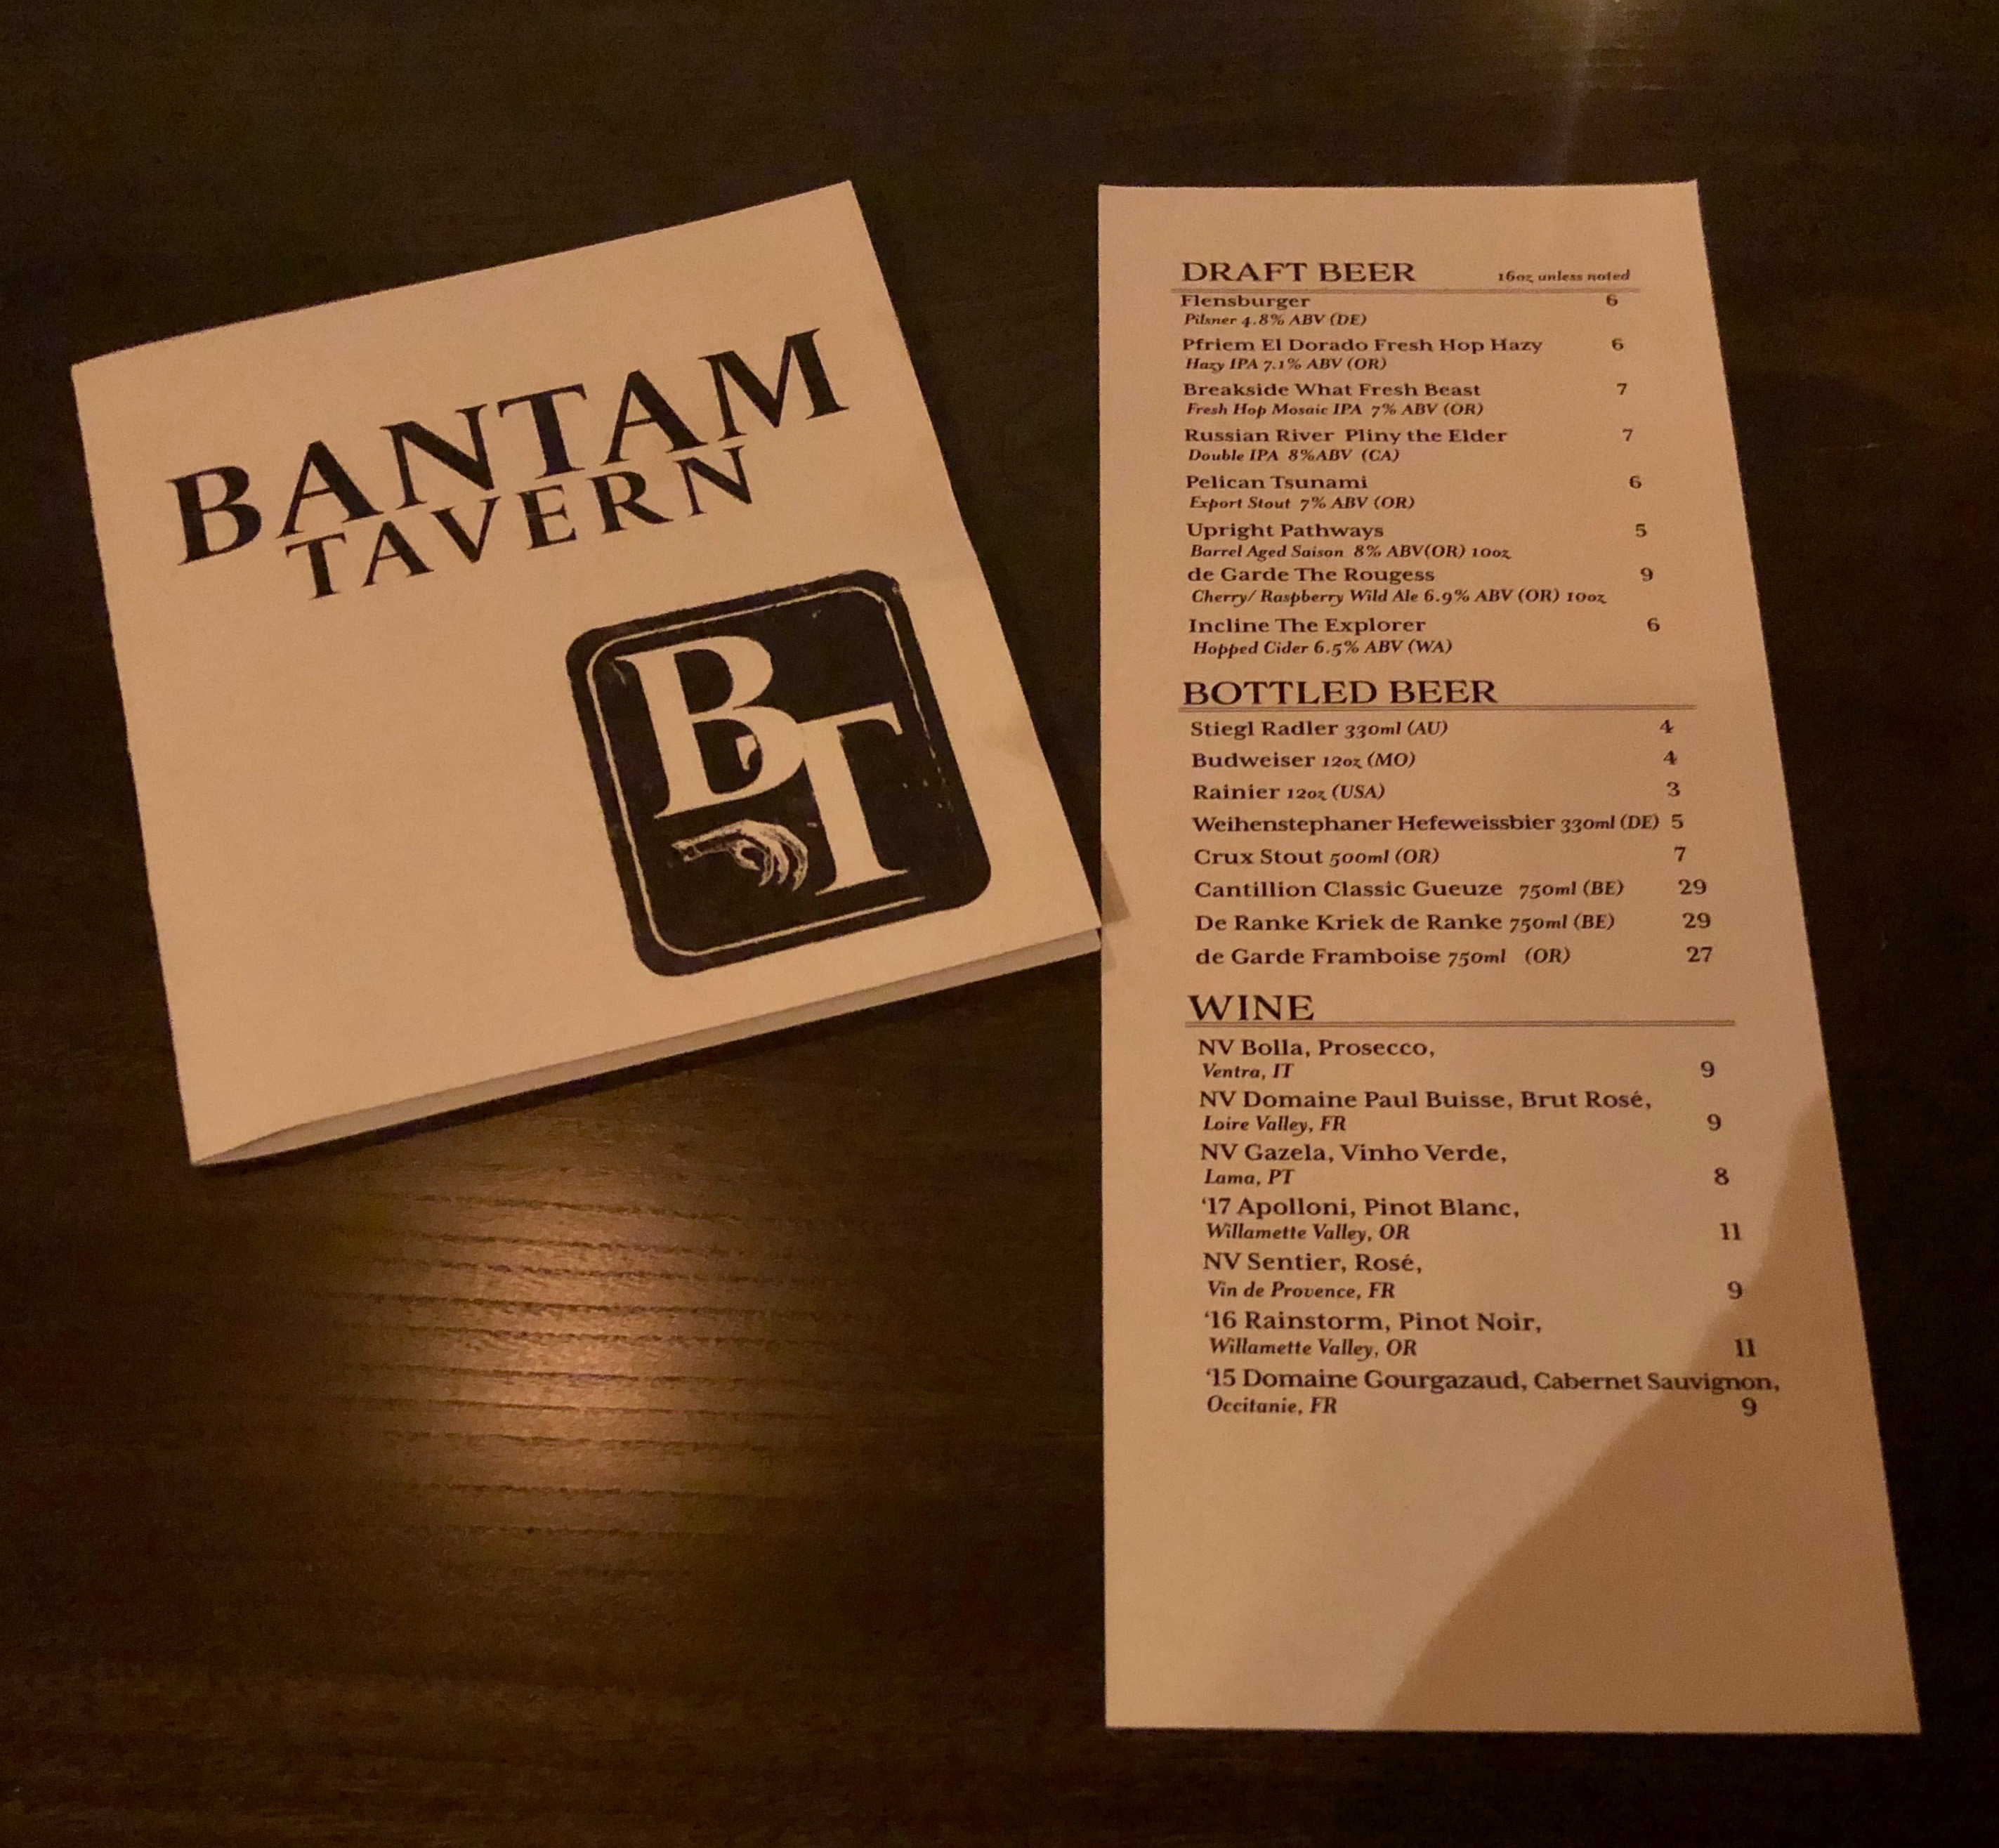 Bantam Tavern beer and wine list.